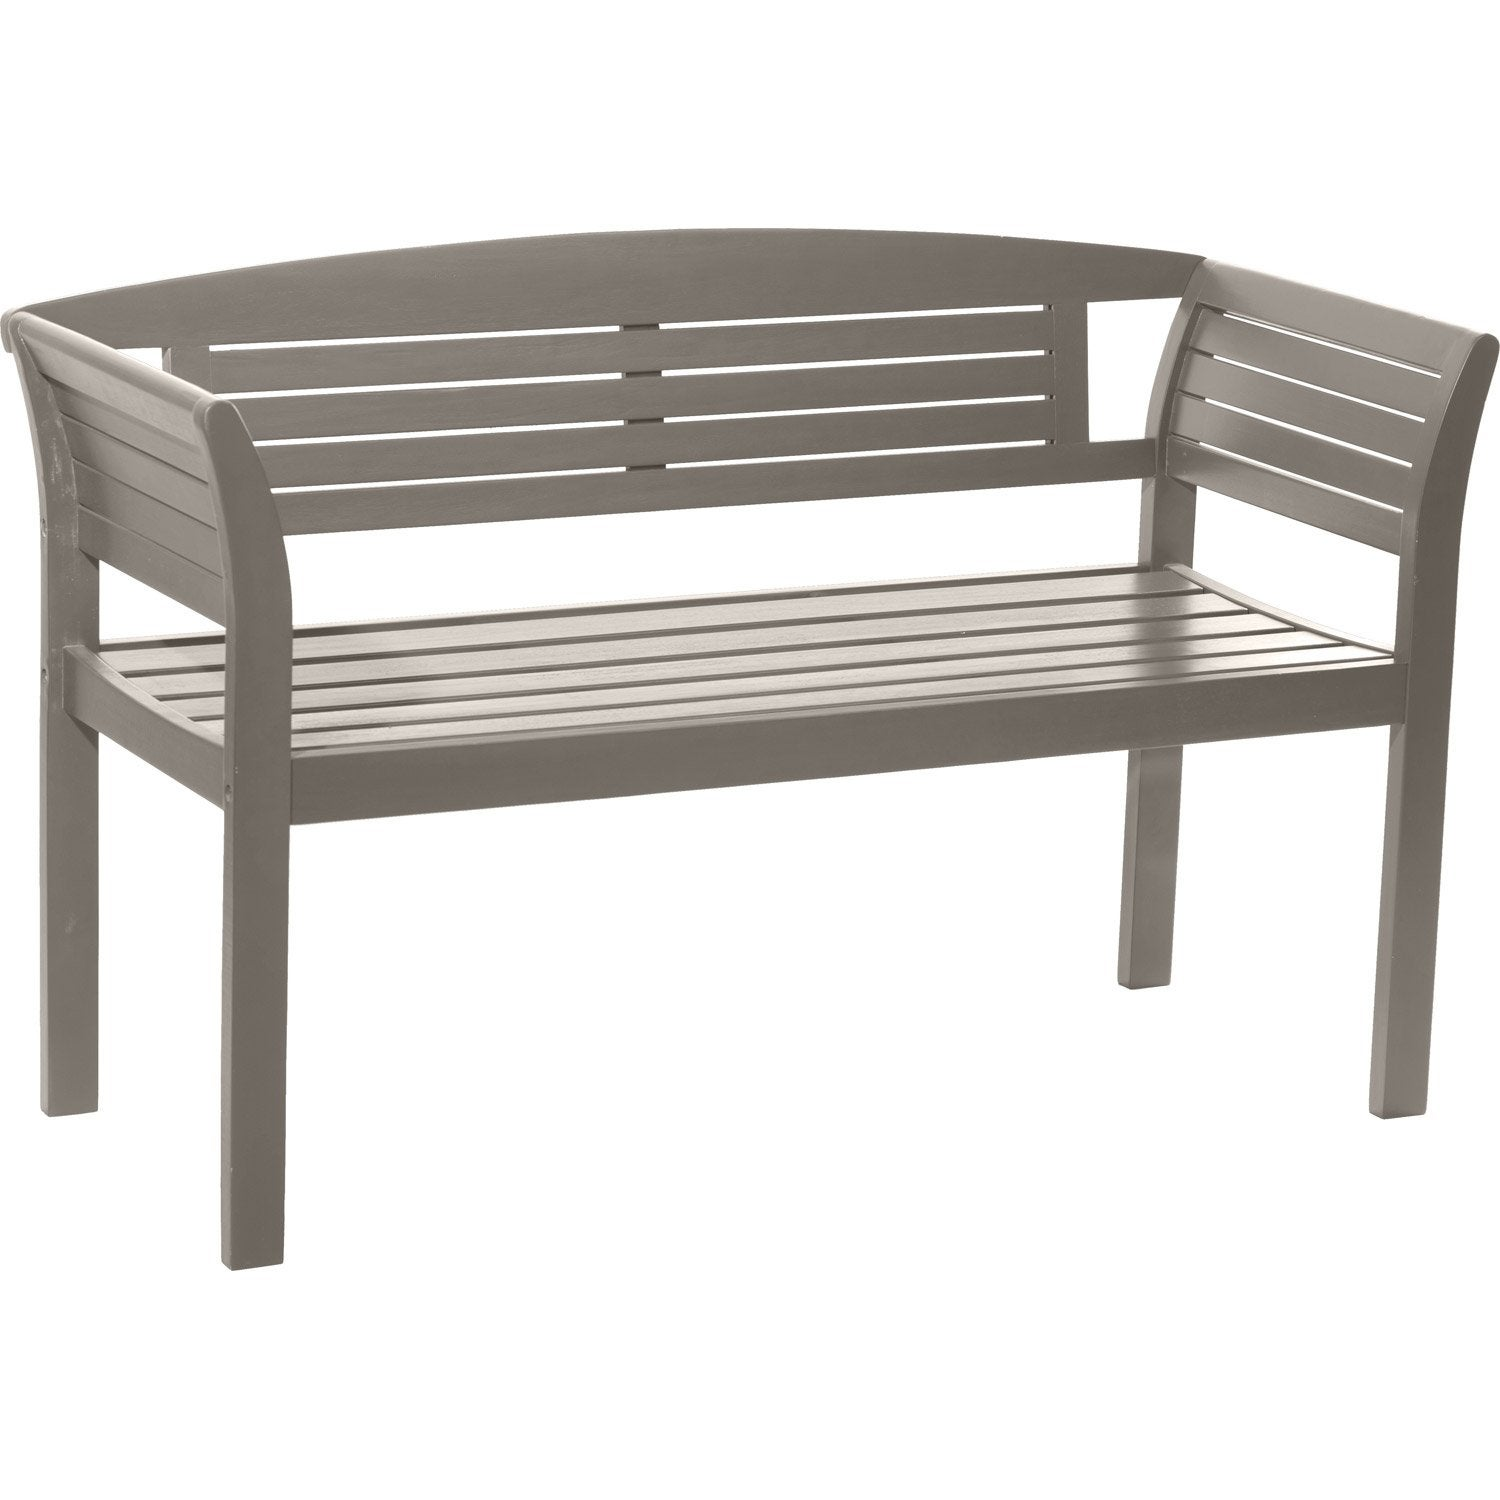 banc 2 places de jardin en bois new york r glisse leroy merlin. Black Bedroom Furniture Sets. Home Design Ideas